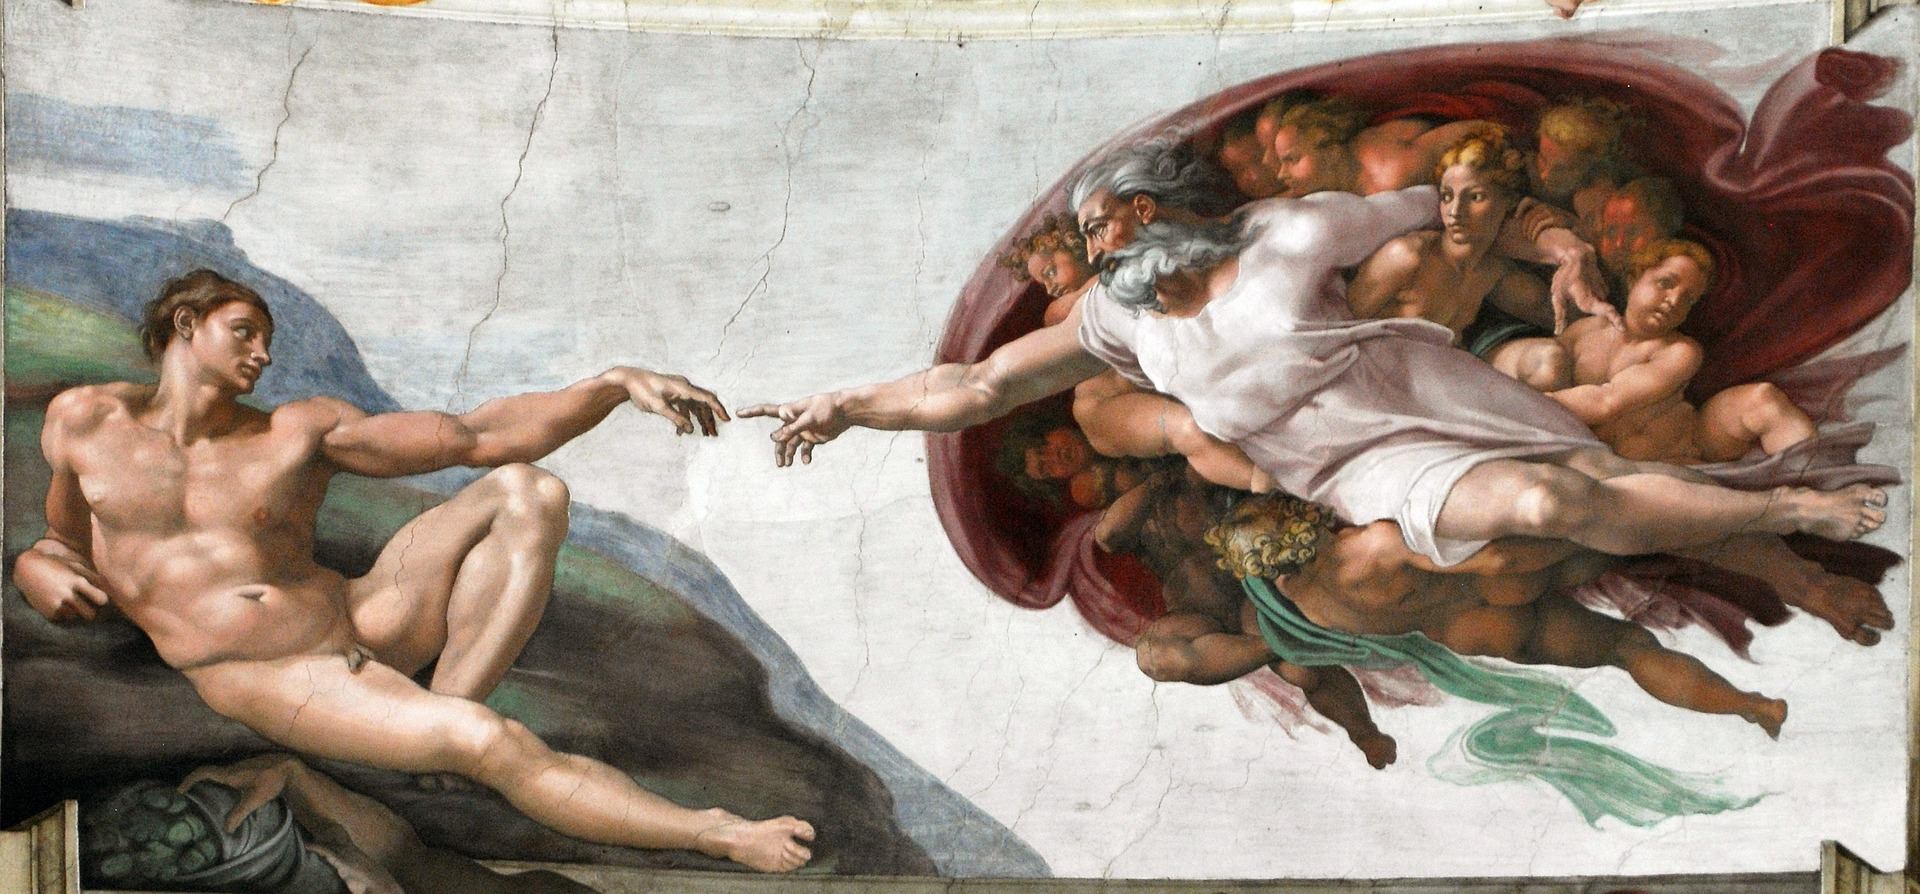 Michelangelo and the Church